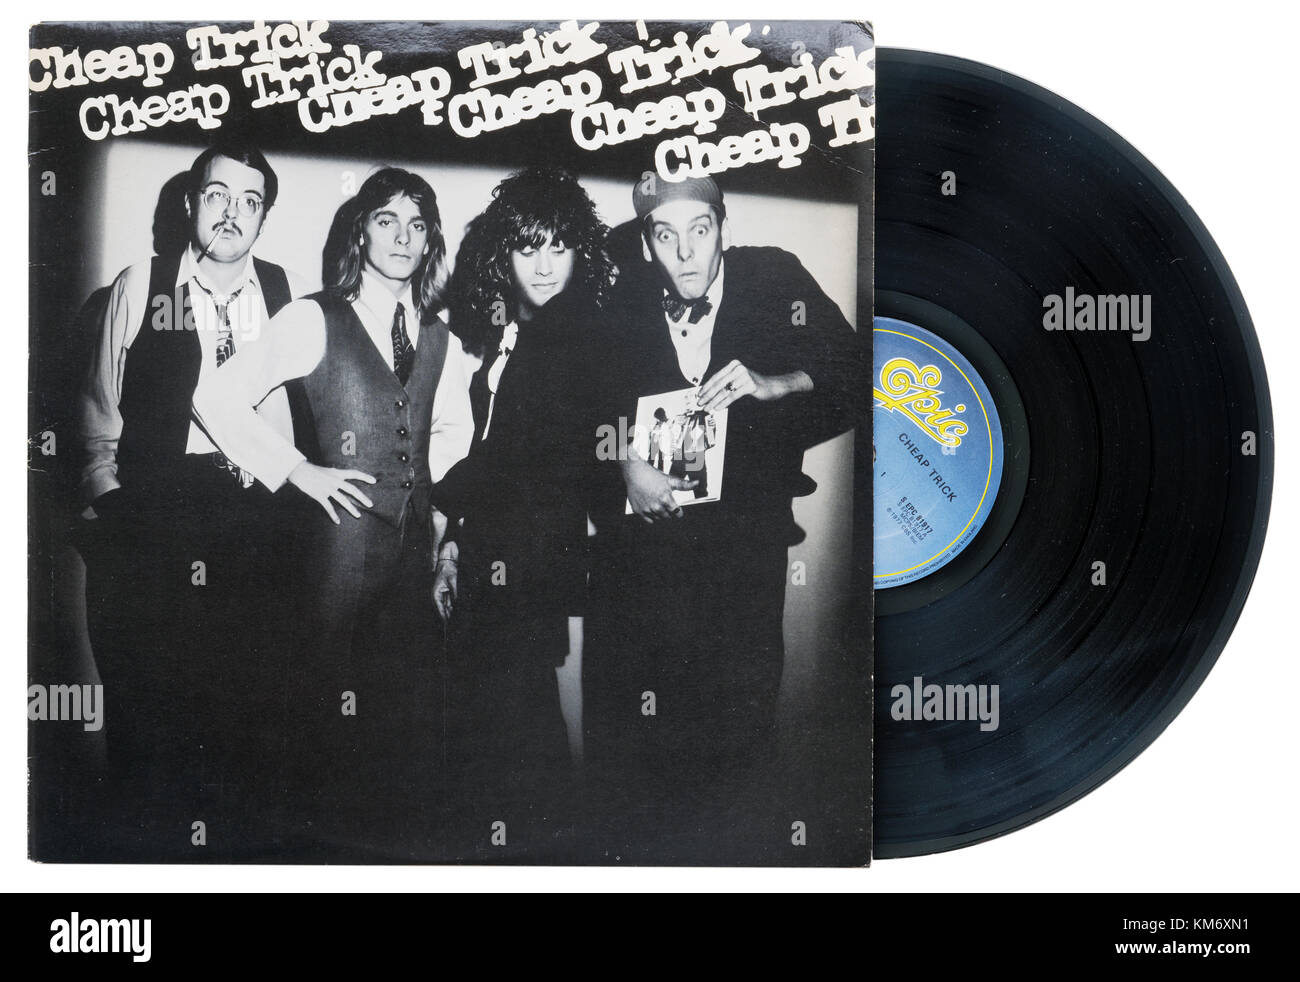 Cheap Trick's eponymous album Cheap Trick - Stock Image